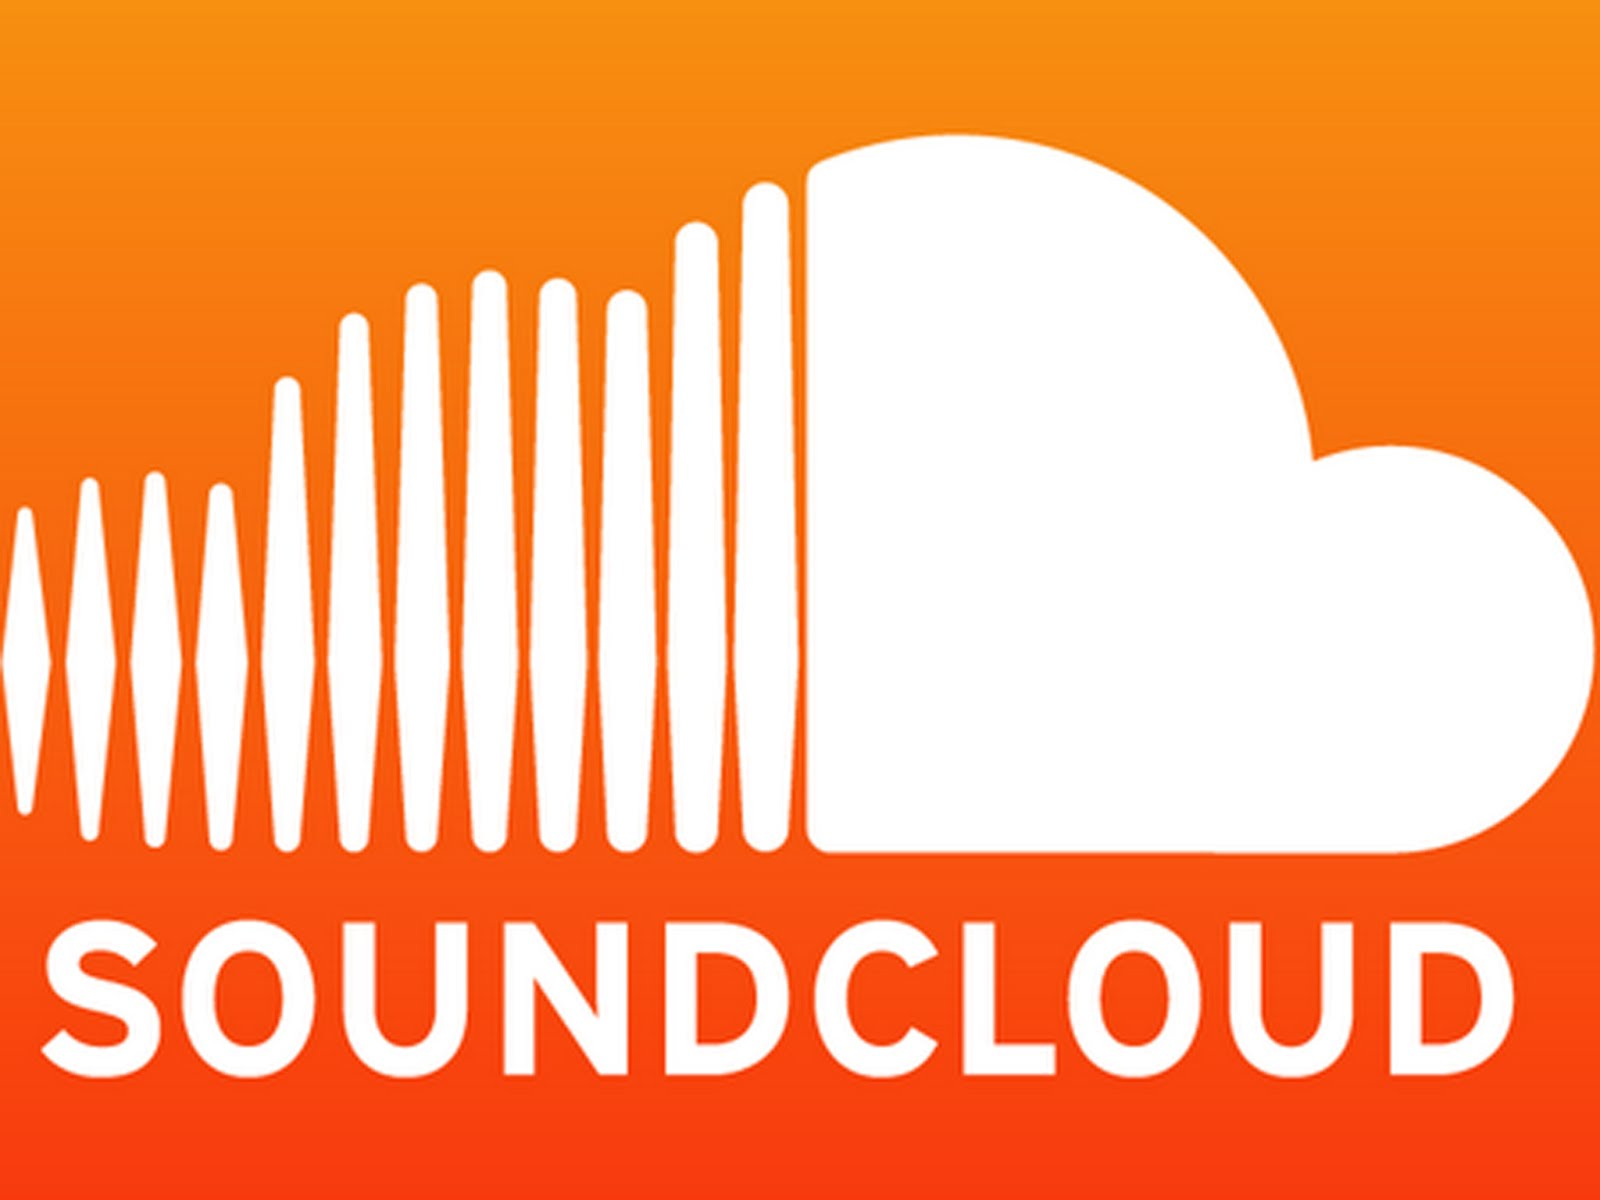 MI SOUNDCLOUD